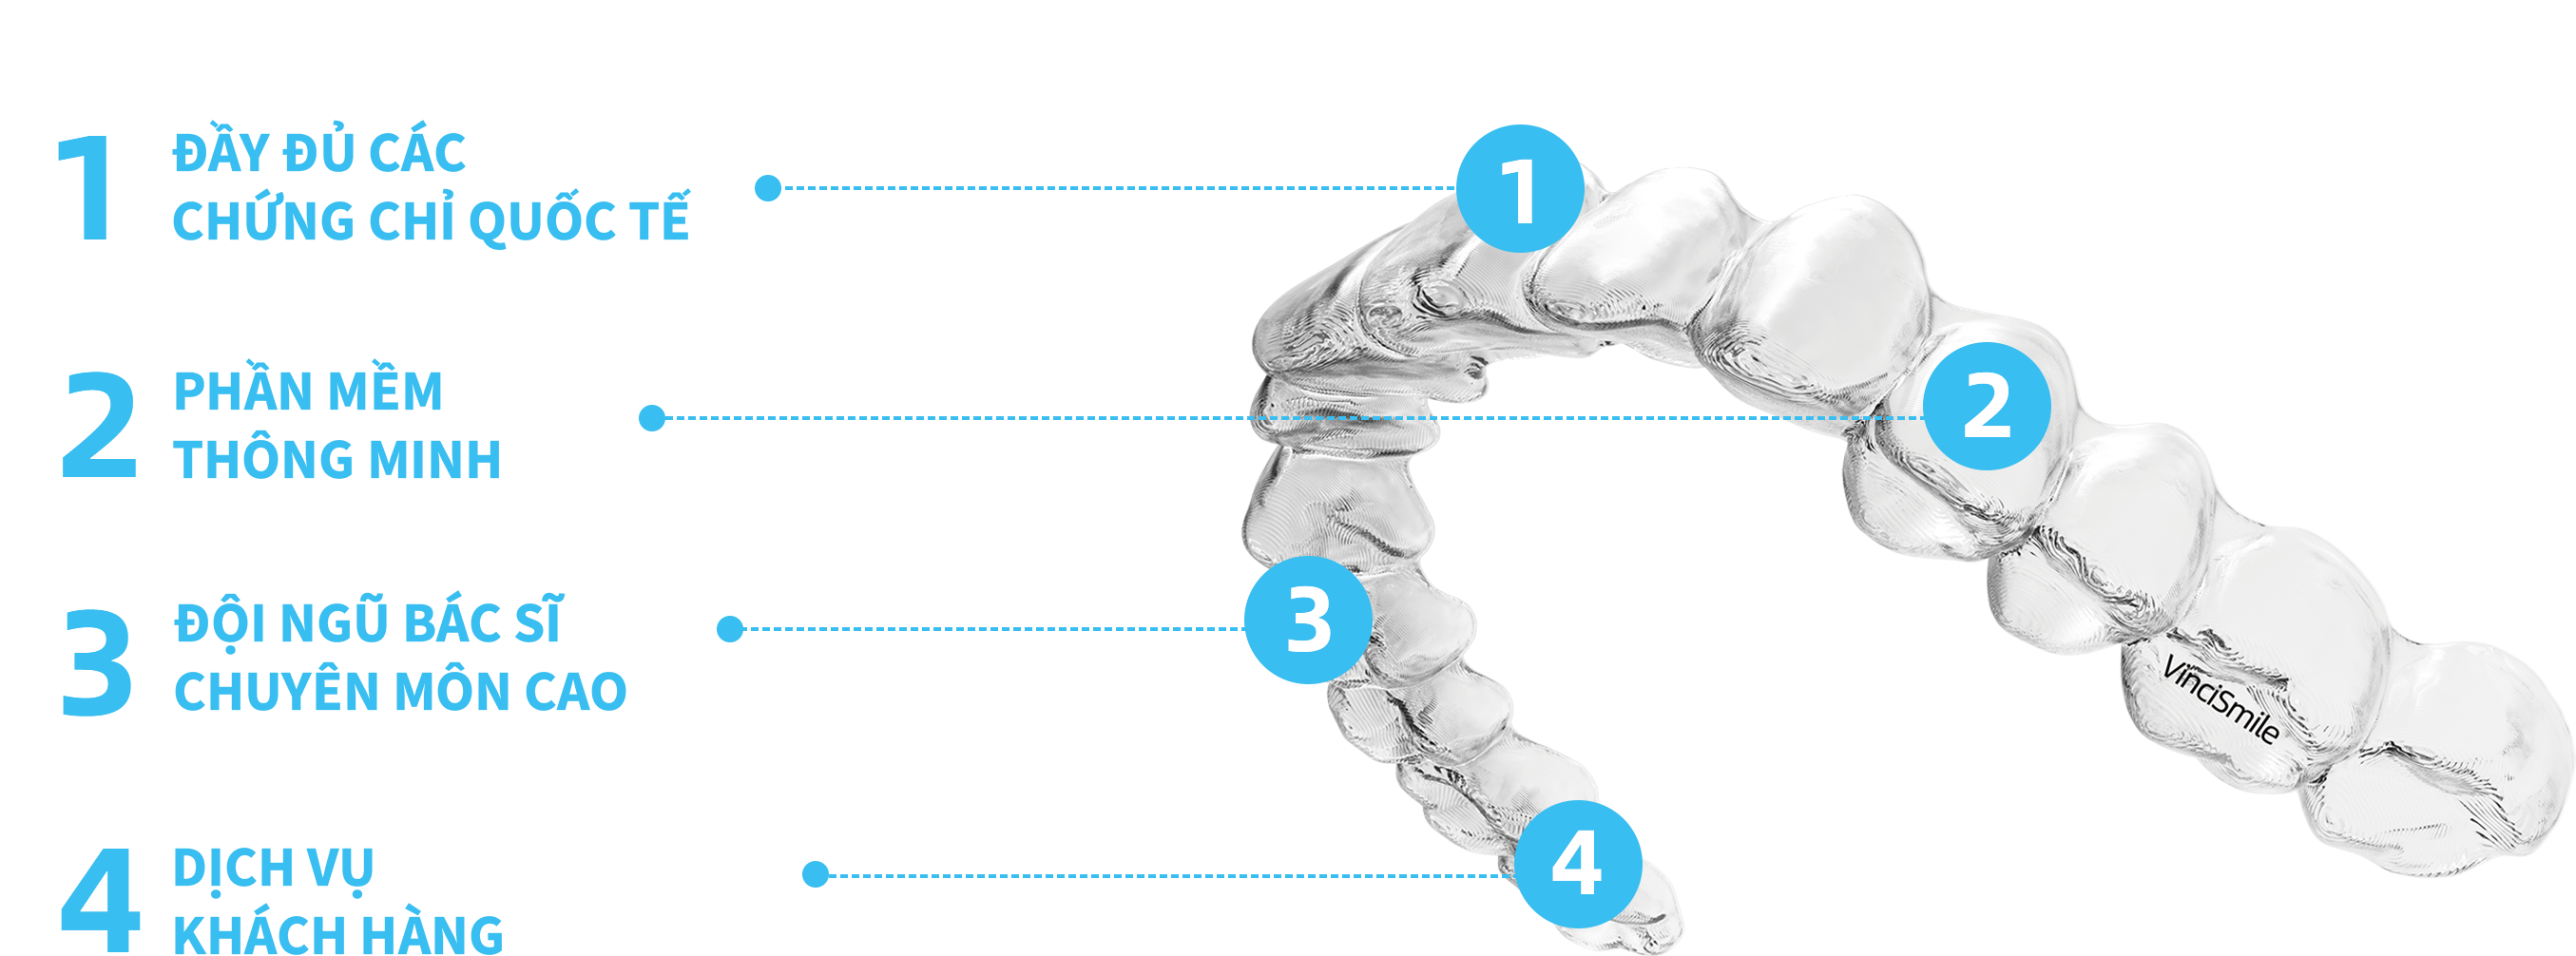 show the main four characteristics of VinciSmile clear aligners: full certificates, smart software, professional medical team and customer oriented service